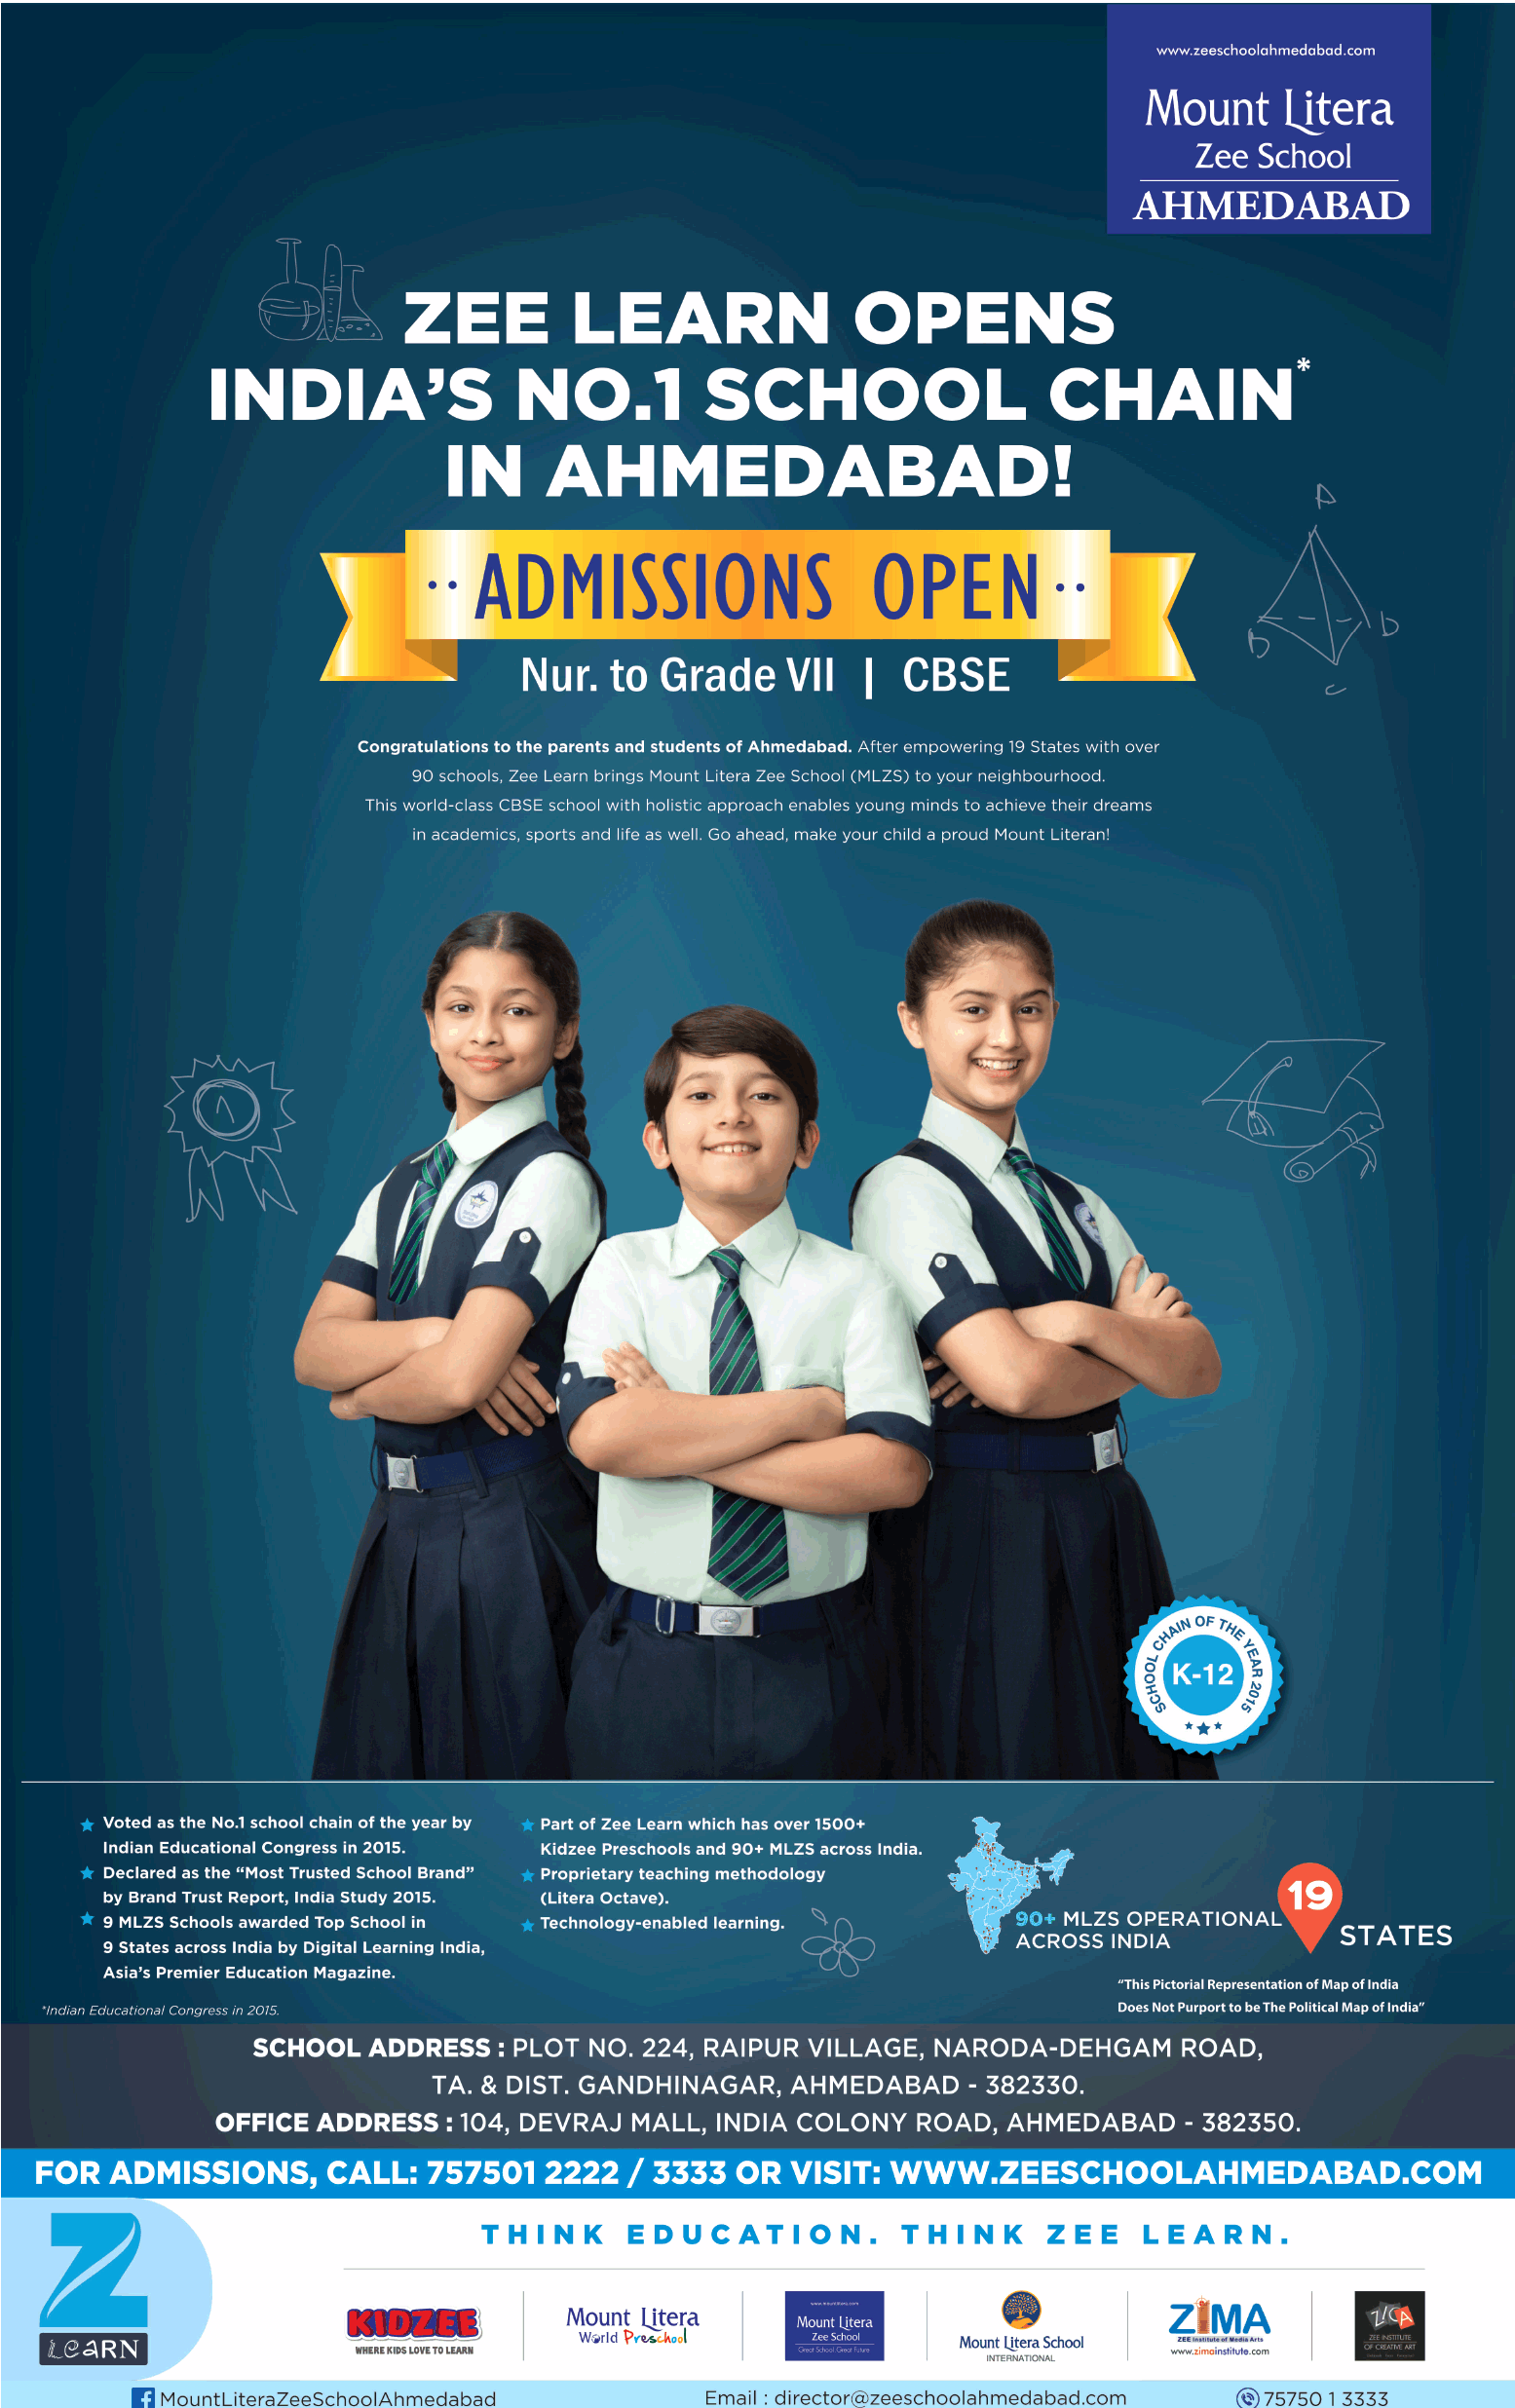 Mount Litera Zee School Ahmedabad Zee Learn Opens Indias No1 School